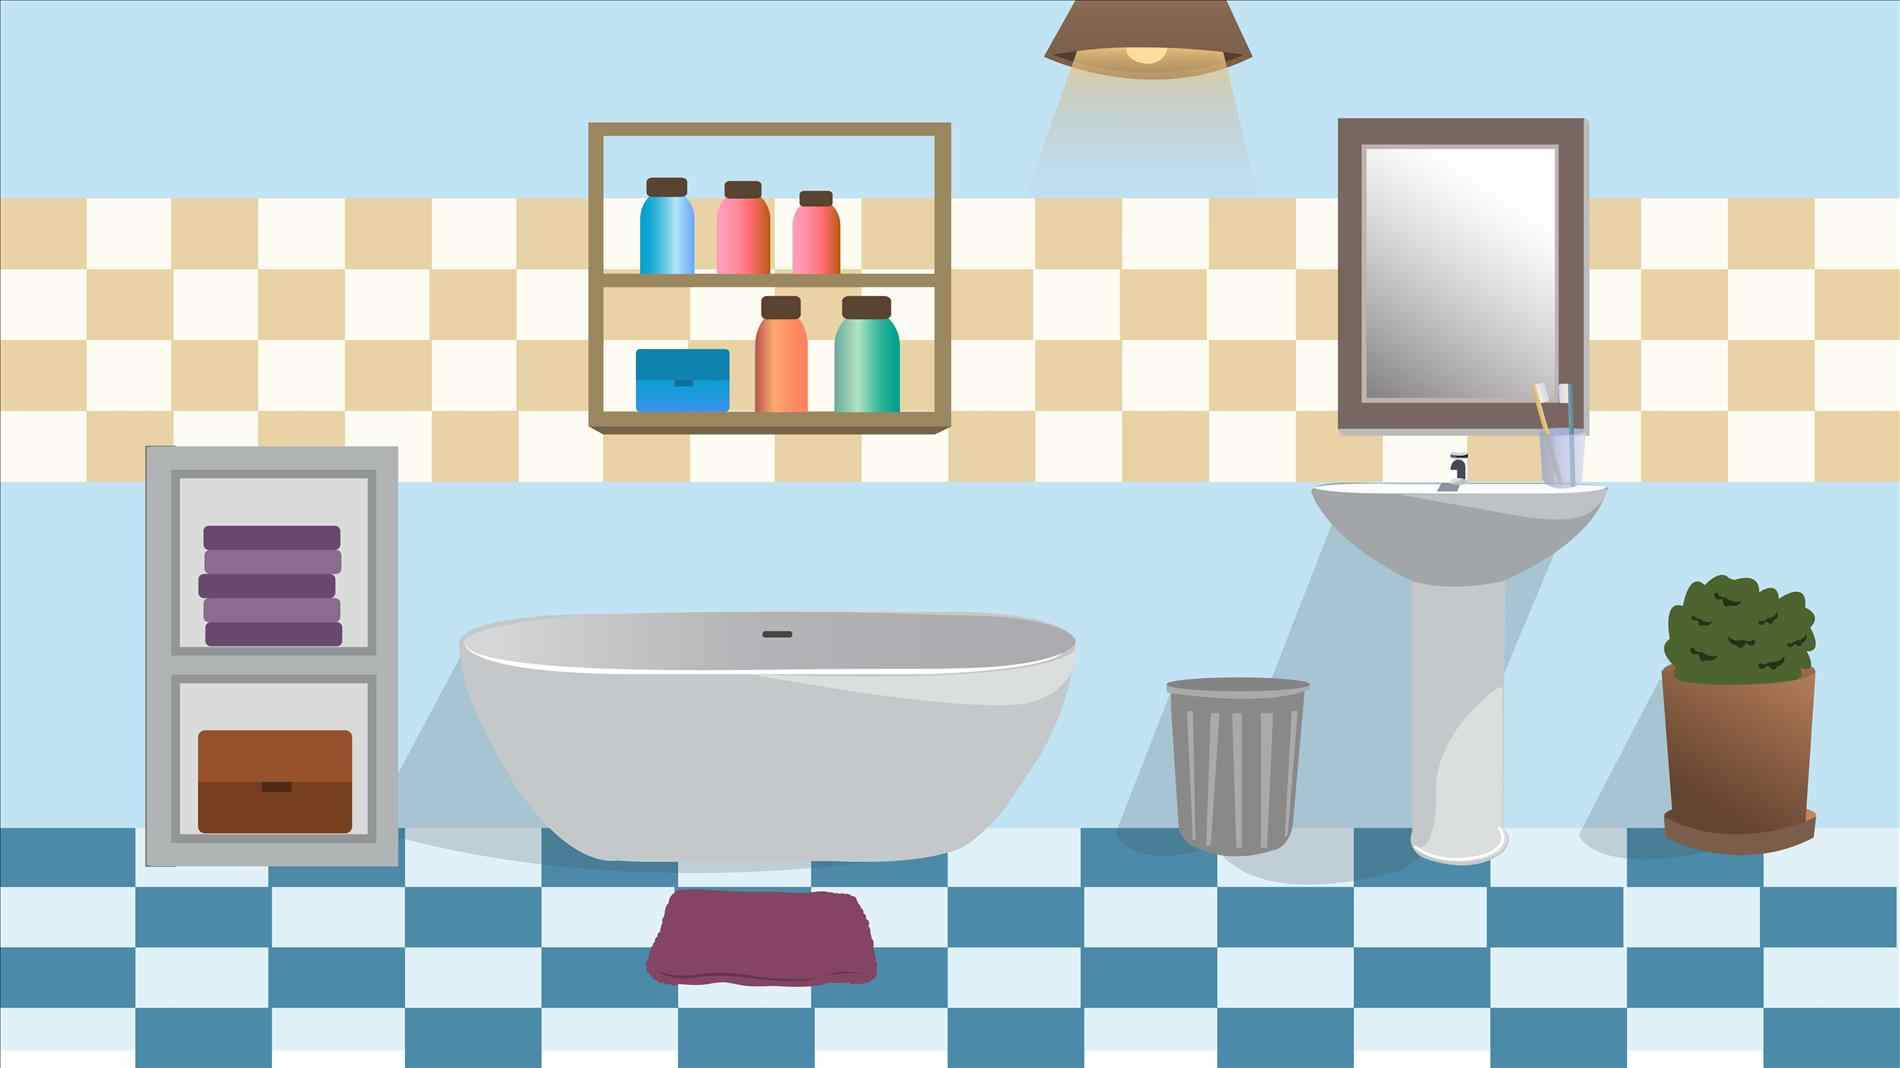 Bathroom clipart. Attorneylizperry com collection of